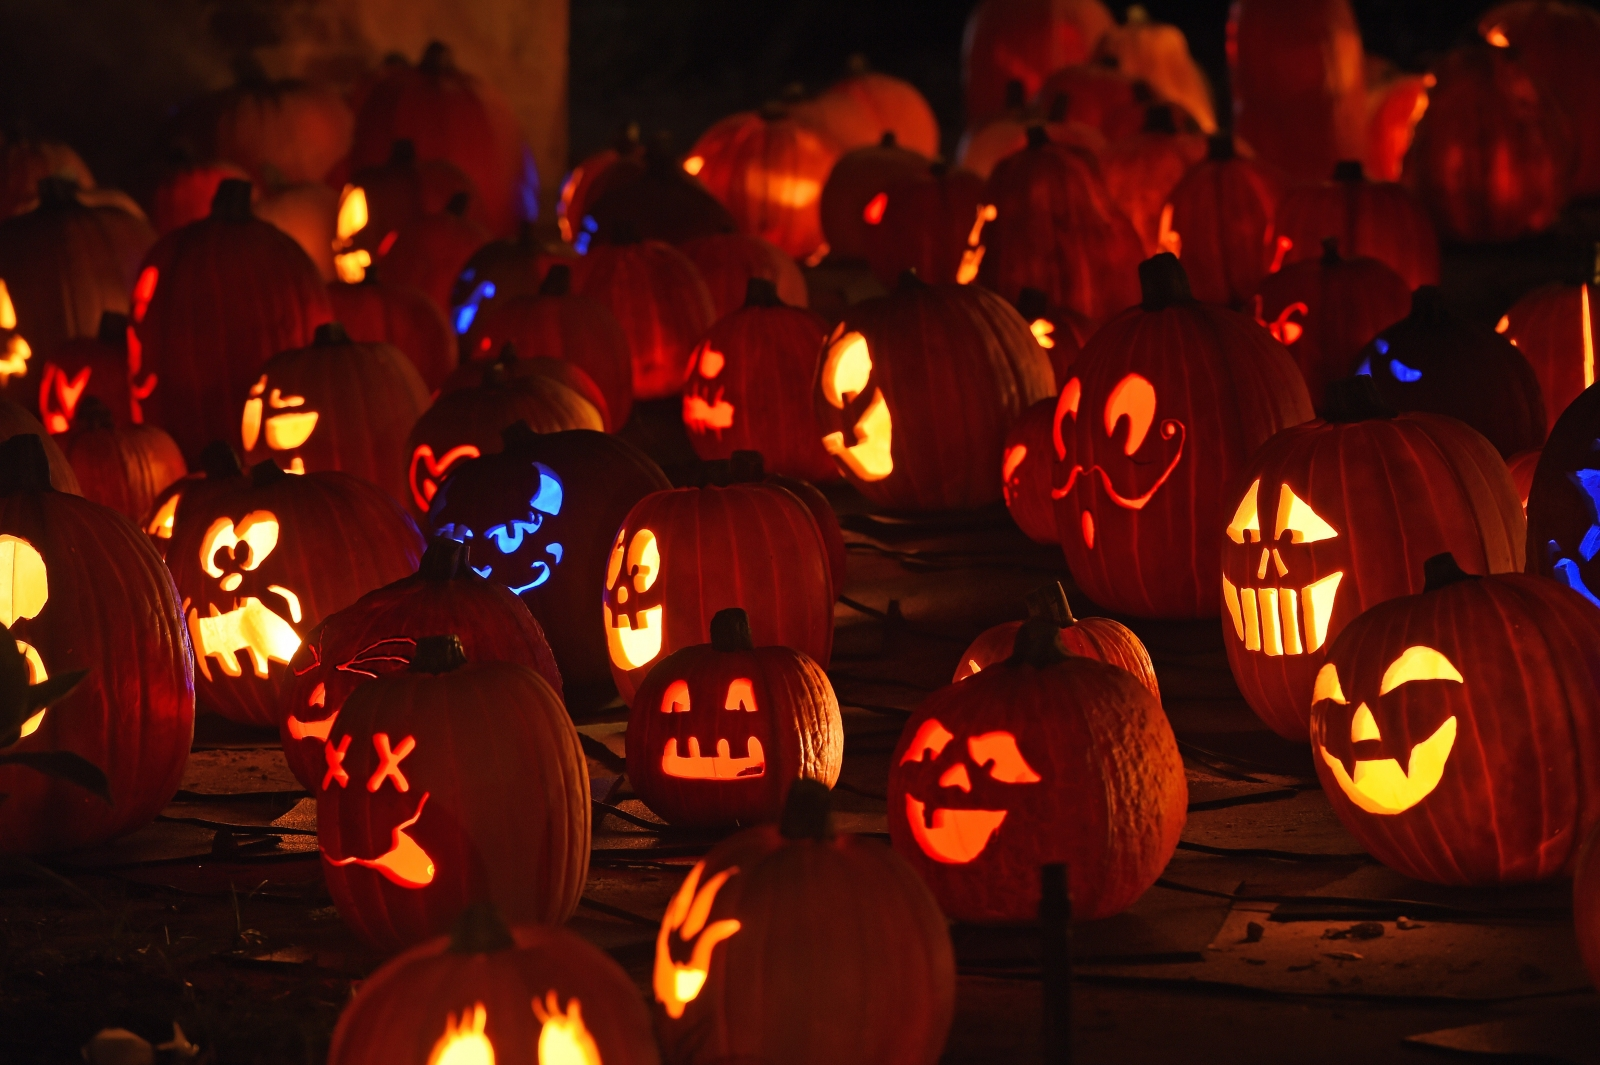 Fall Festival Wallpaper Halloween 2014 Exorcist Priest Says Replace Satanic